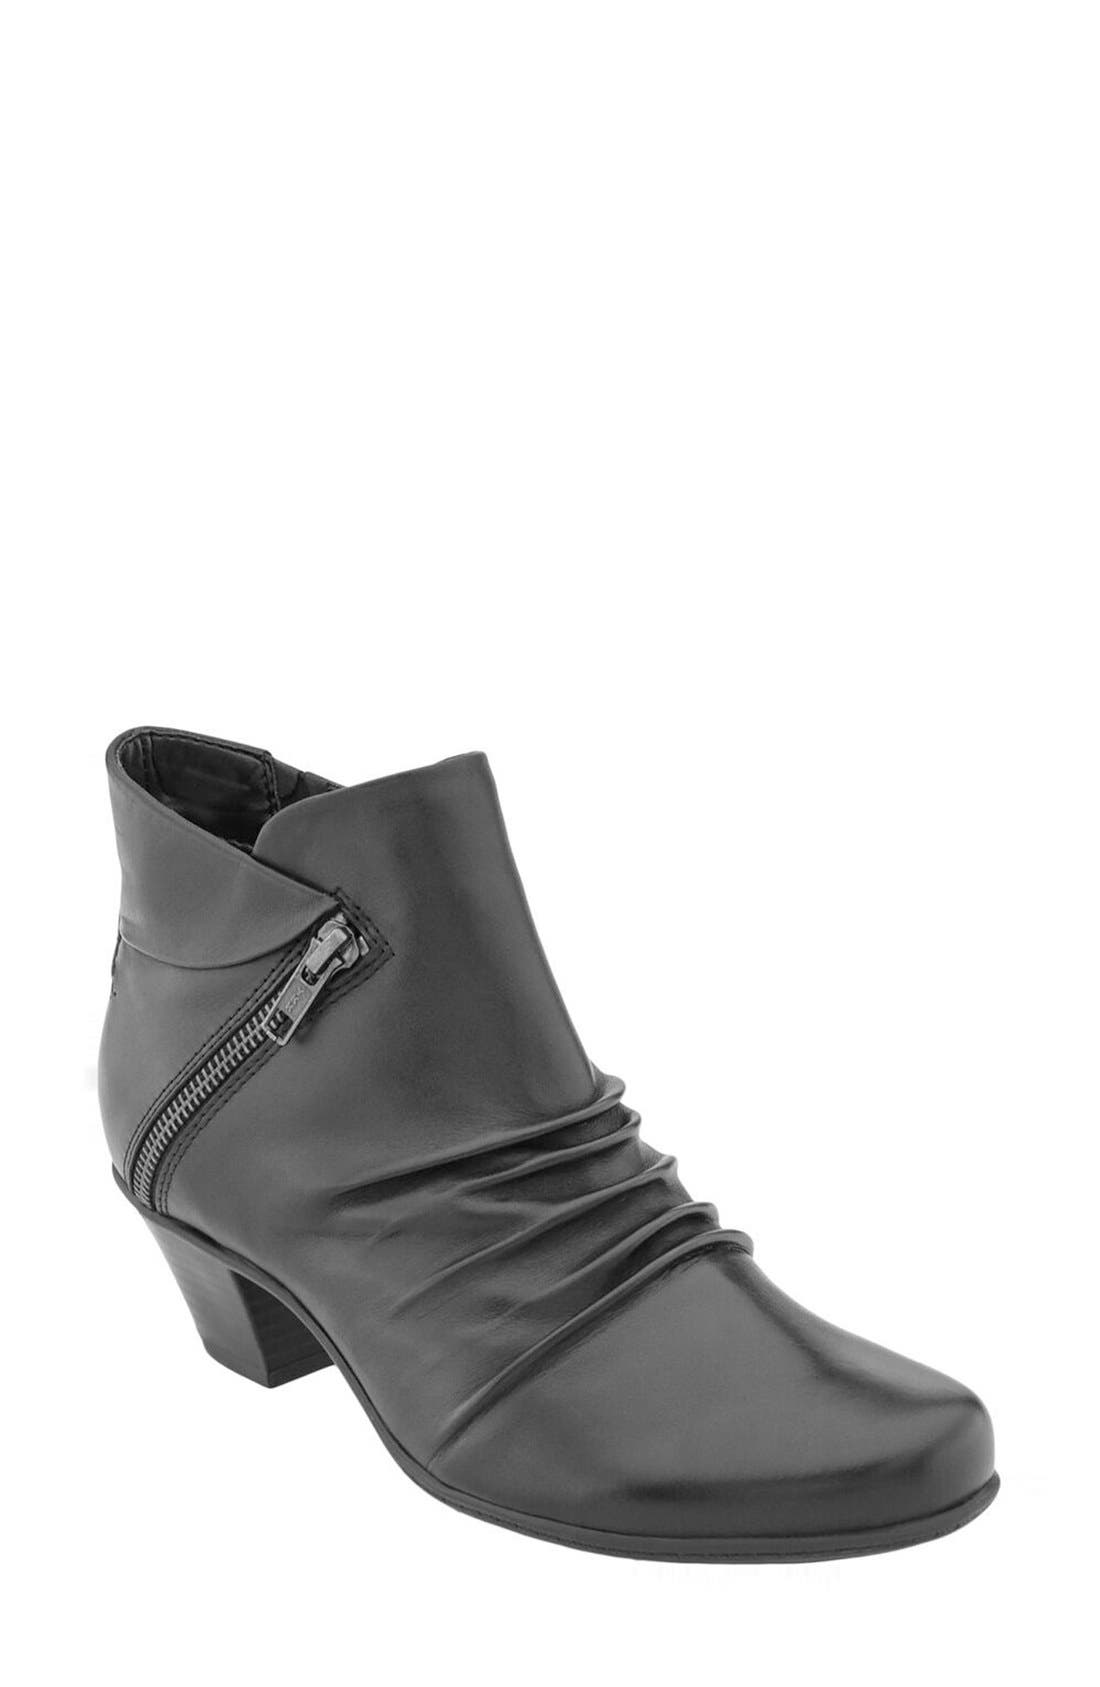 Main Image - Earth® 'Pegasus' Bootie (Women)